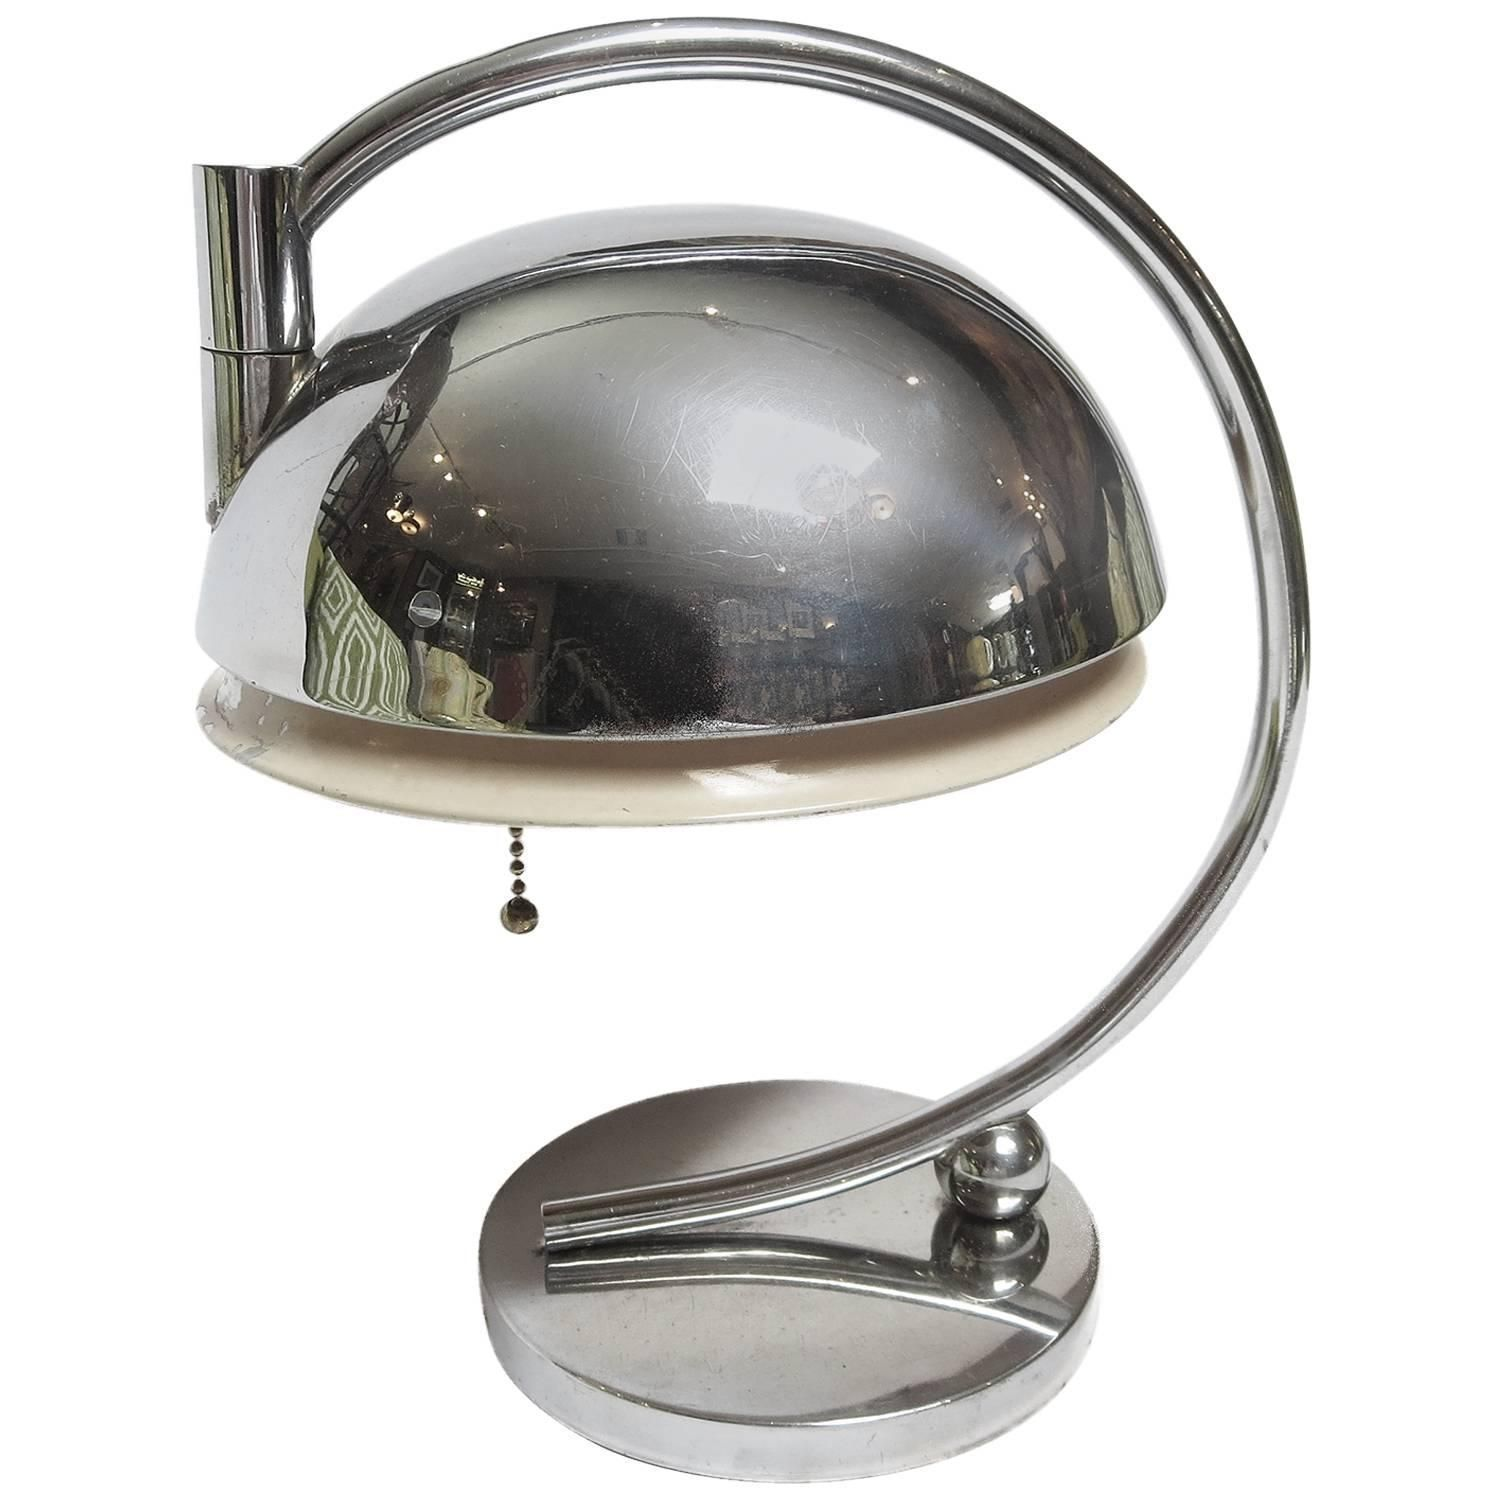 Art Deco Chrome Table Lamp by Gilbert Rohde | From a unique collection of antique and modern table lamps at https://www.1stdibs.com/furniture/lighting/table-lamps/